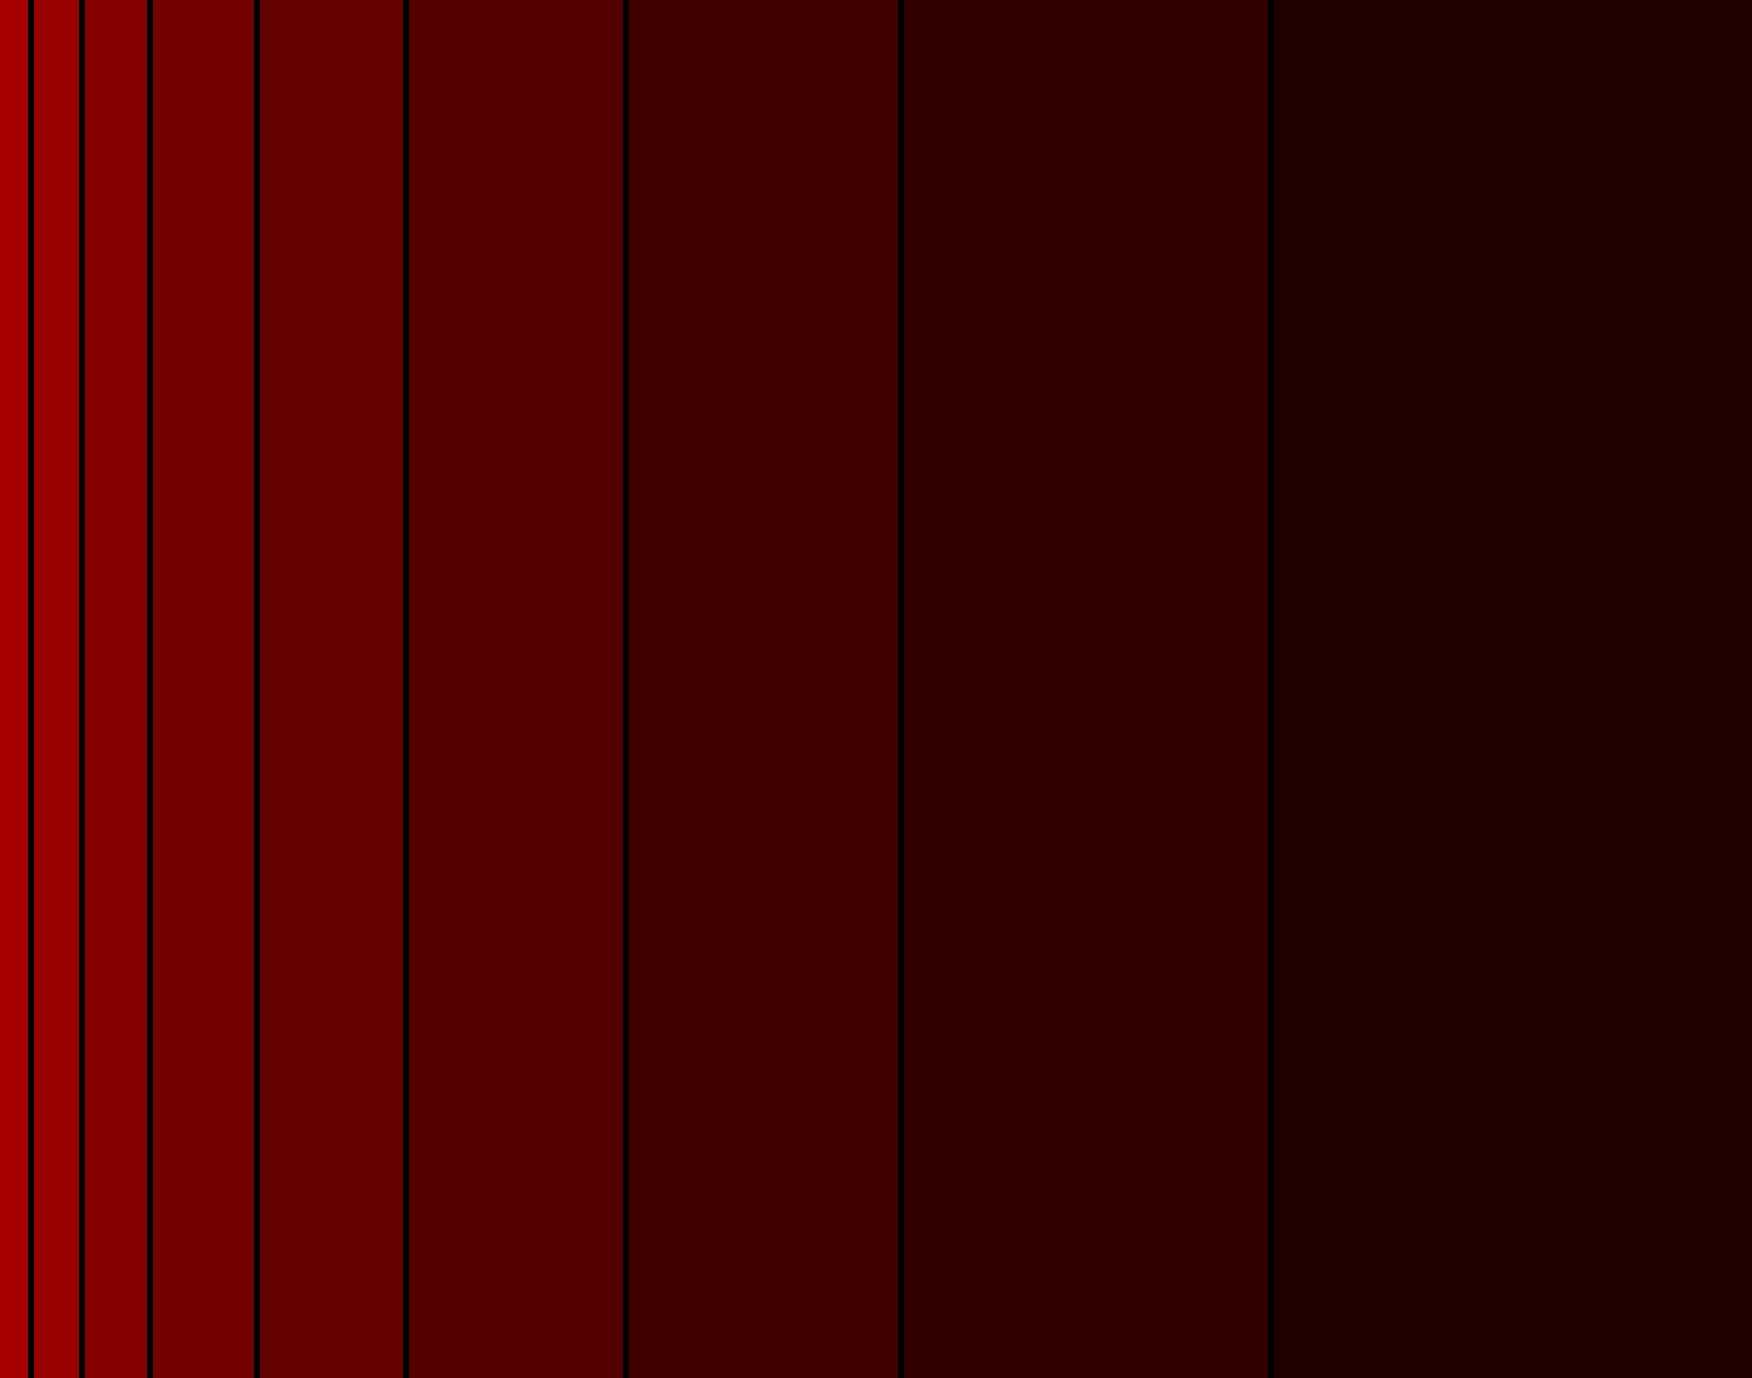 Theater Curtain Maroon Clipart PPT Backgrounds